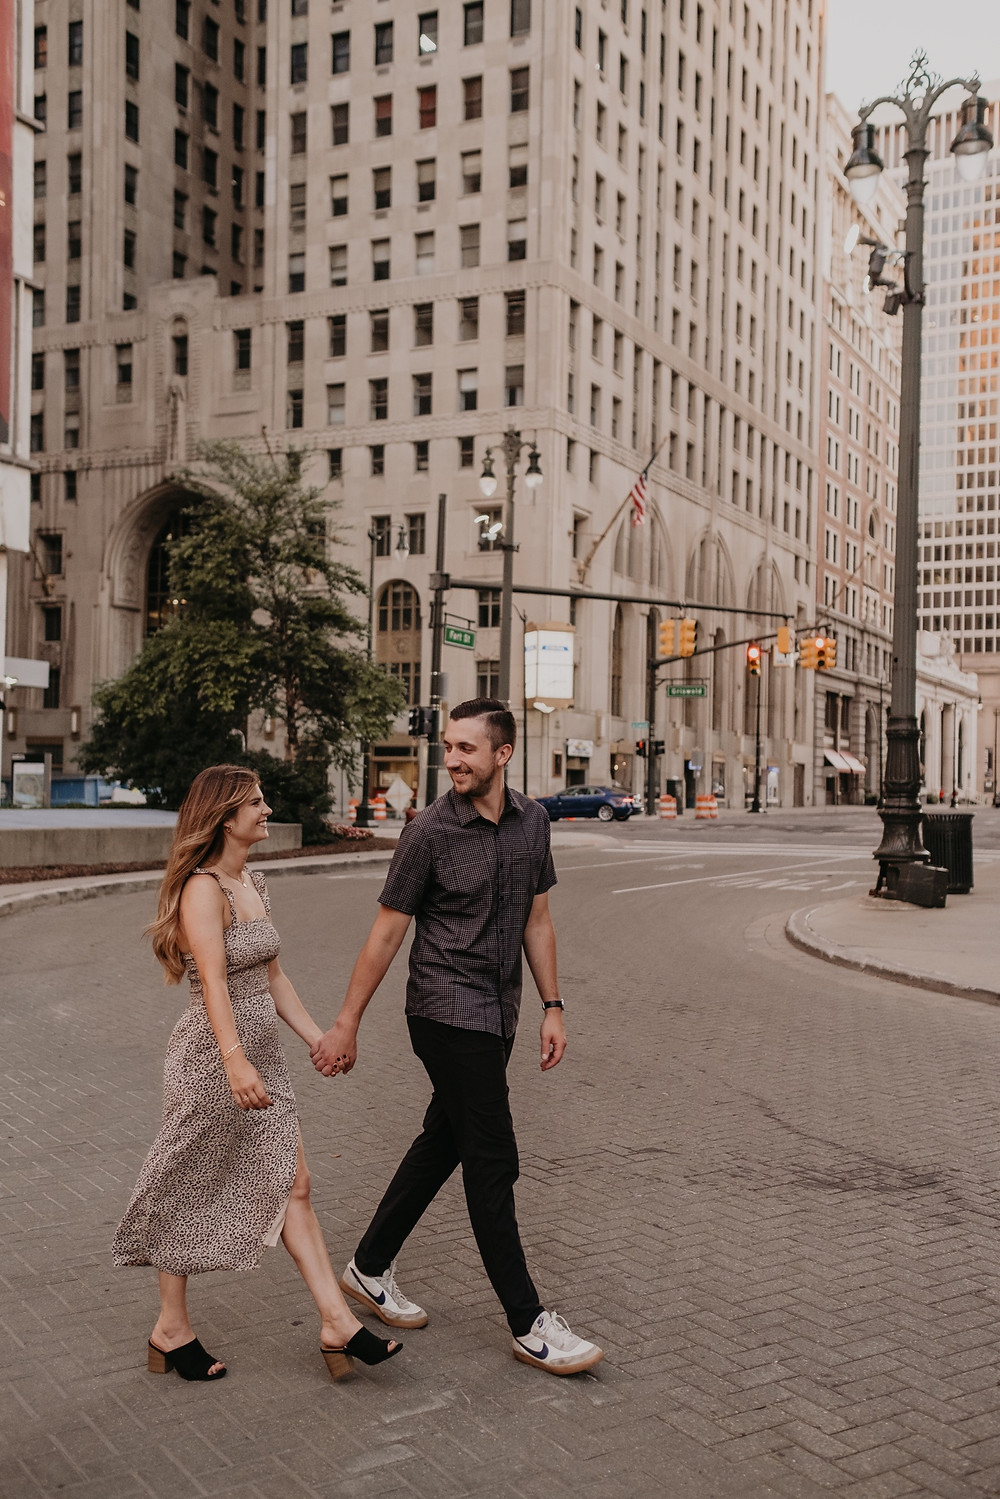 Detroit Downtown city engagement photos. Photographed by Nicole Leanne Photography.